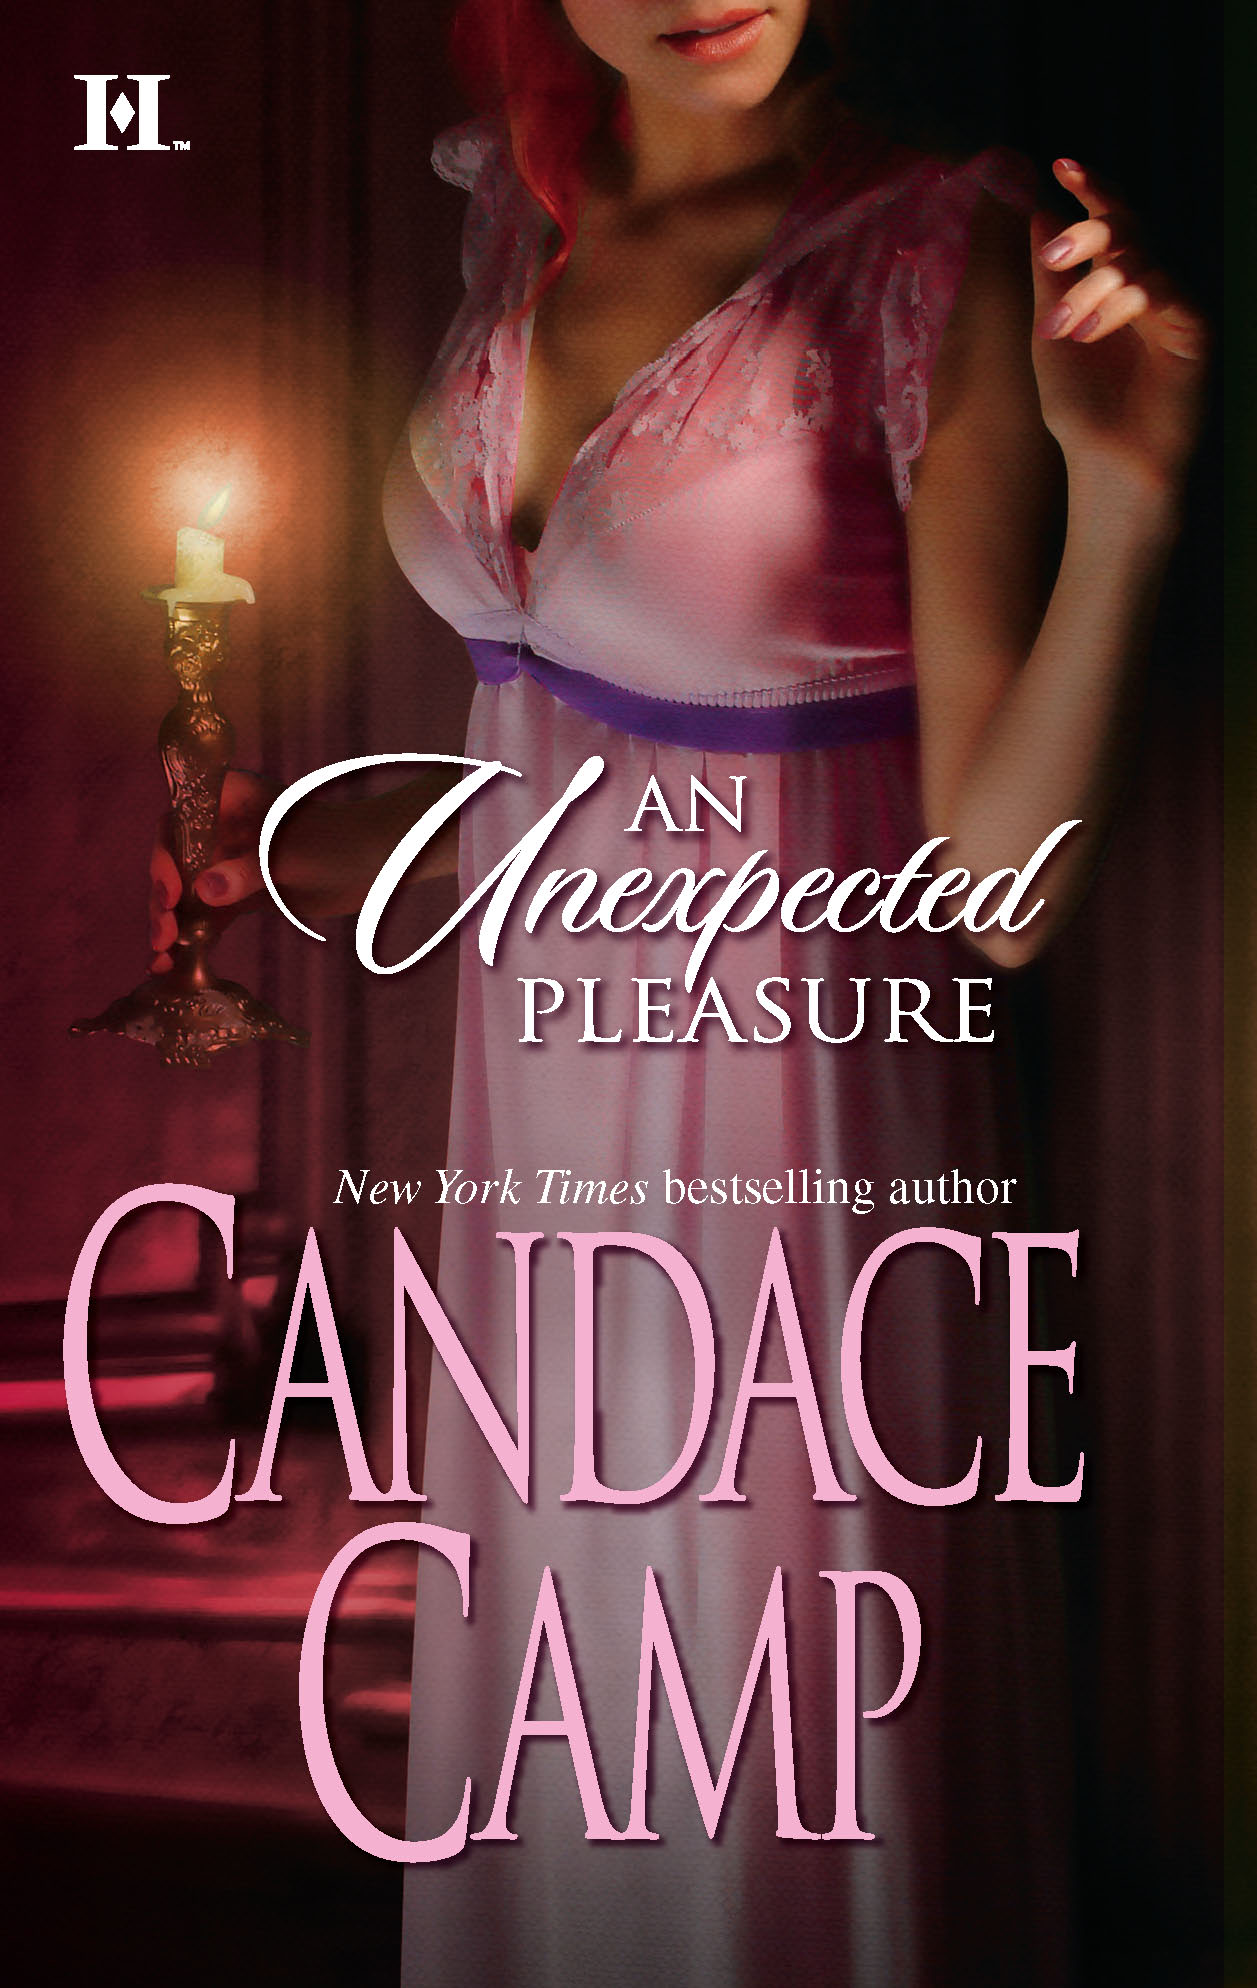 Candace Camp An Unexpected Pleasure jack olsen hastened to the grave